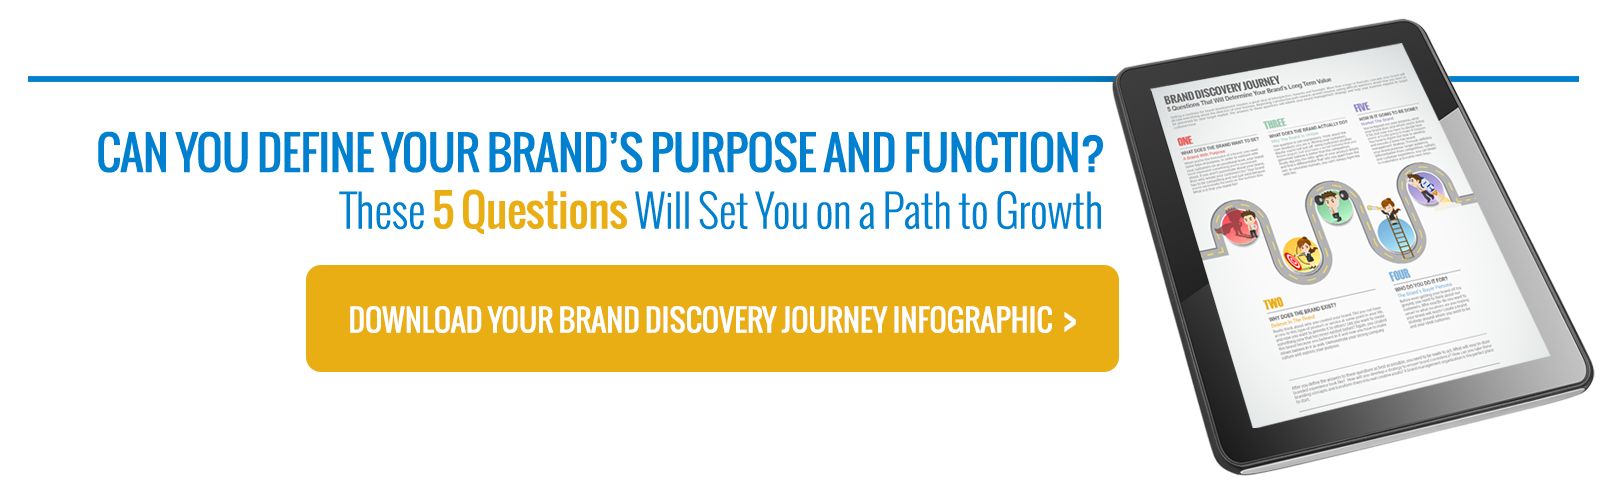 Brand Discovery Journey